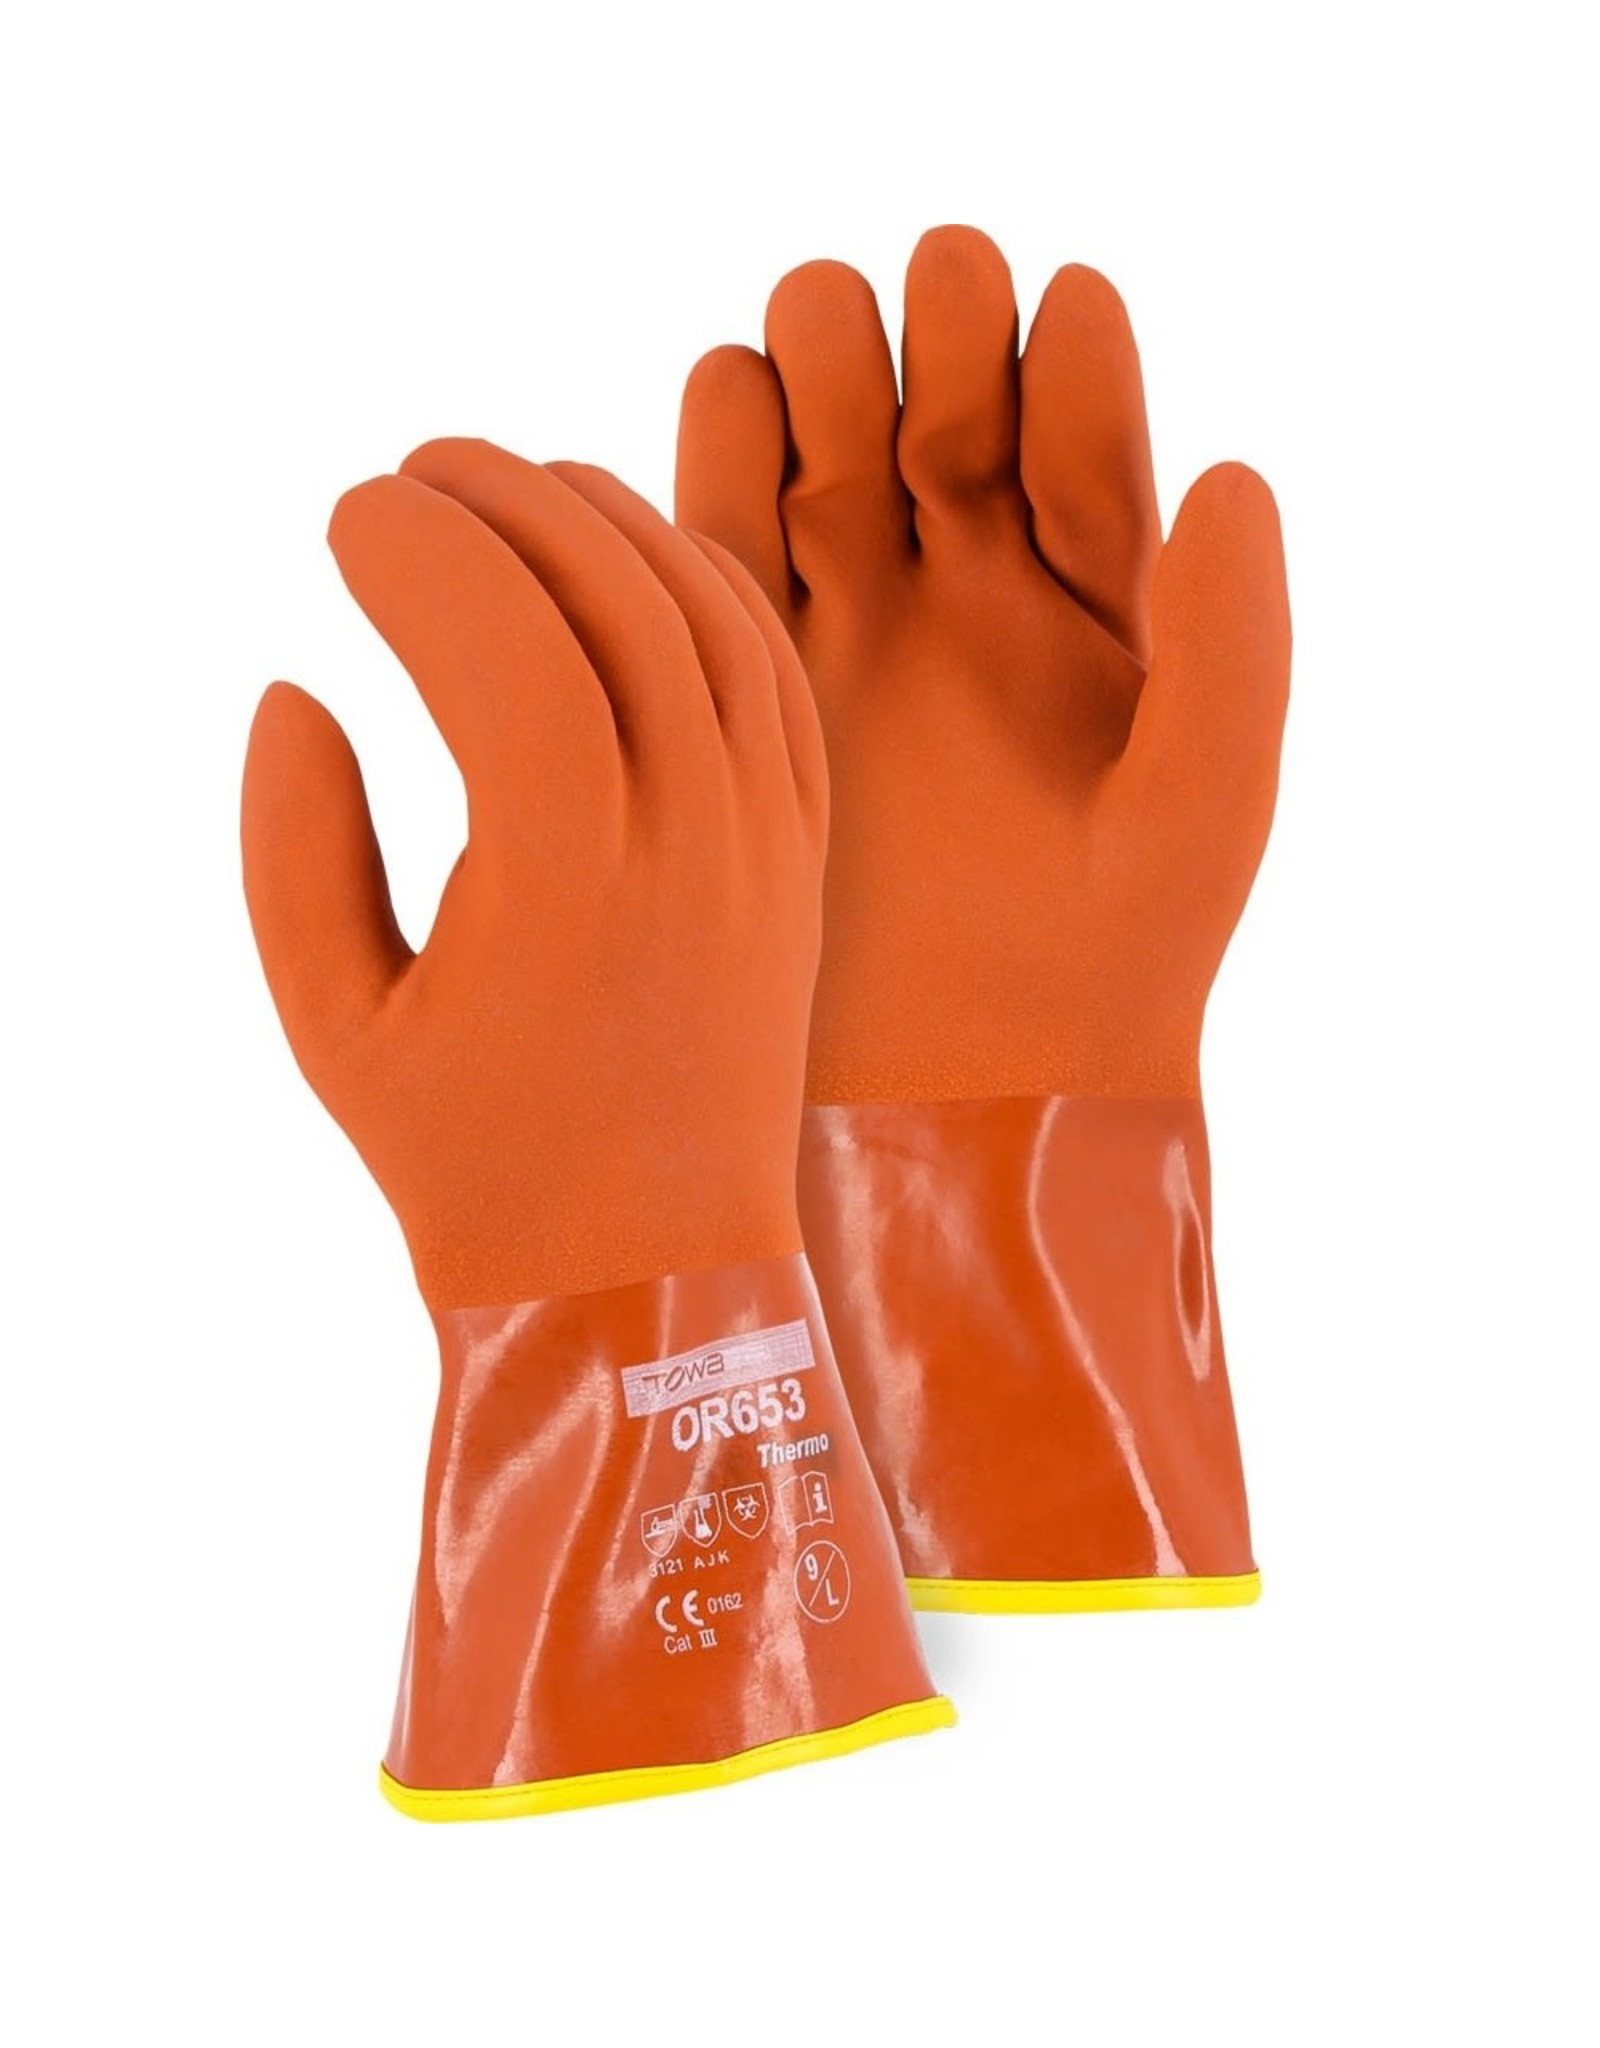 Majestic Glove Winter Lined PVC Double Dipped Glove on Seamless Knit Shell with Removable Liner L